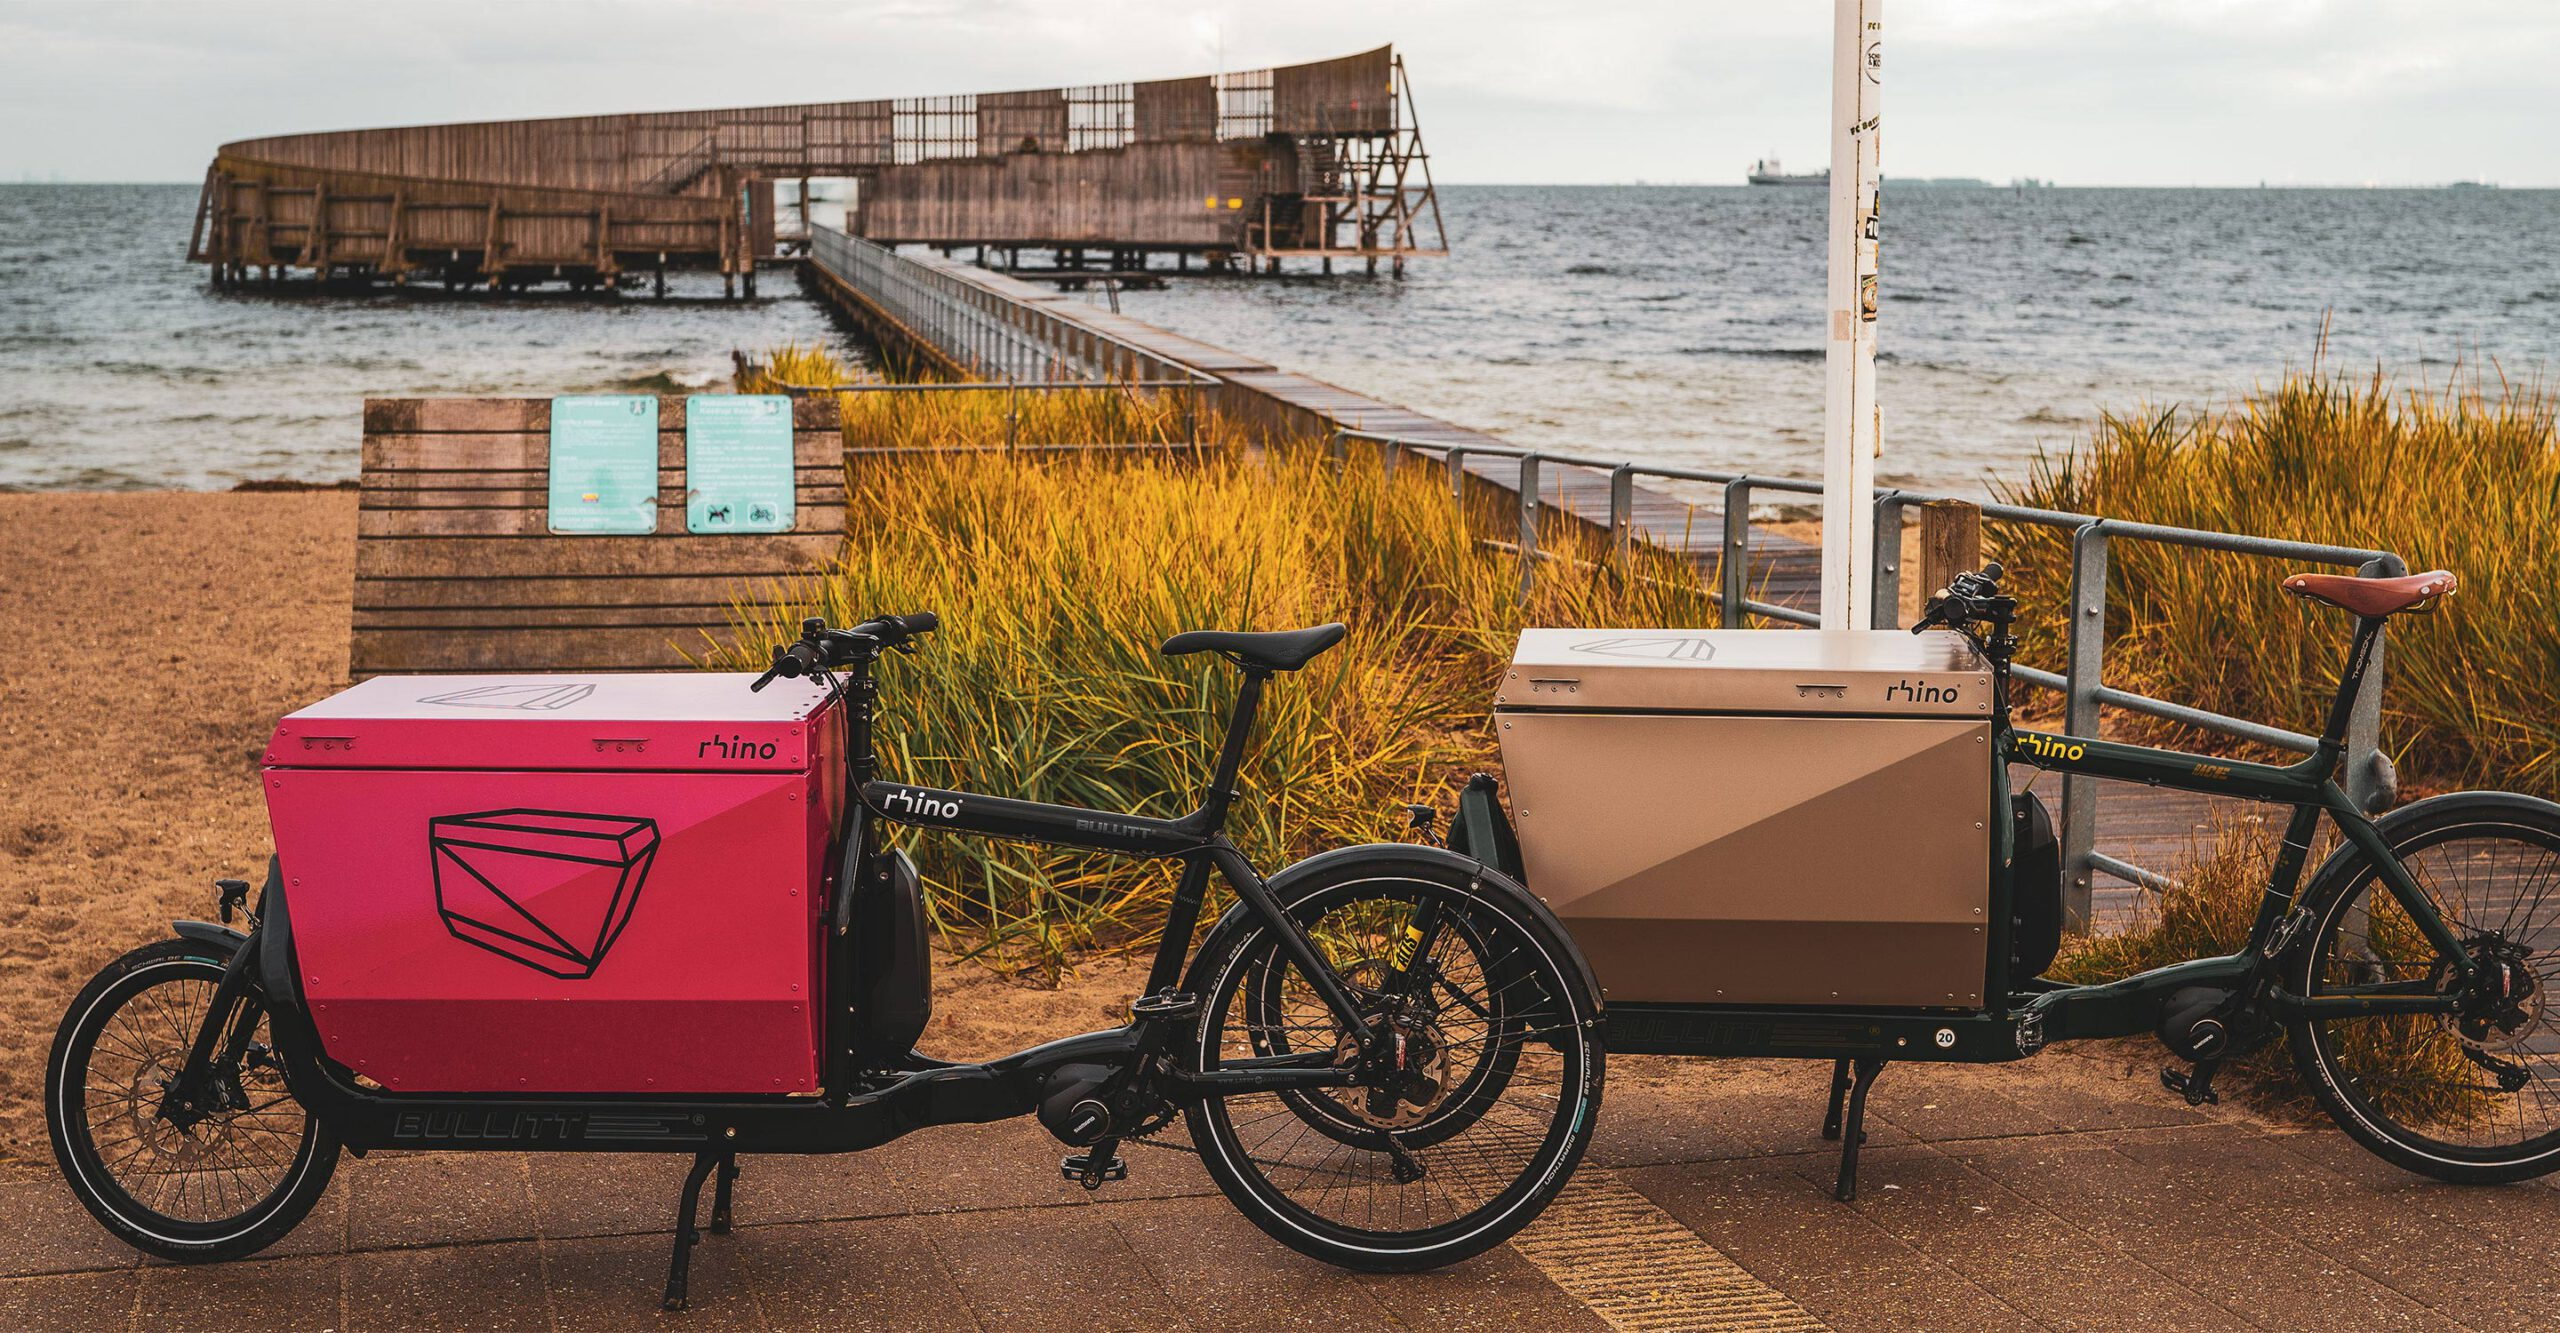 rhino boxes and containers for cargo bicycles